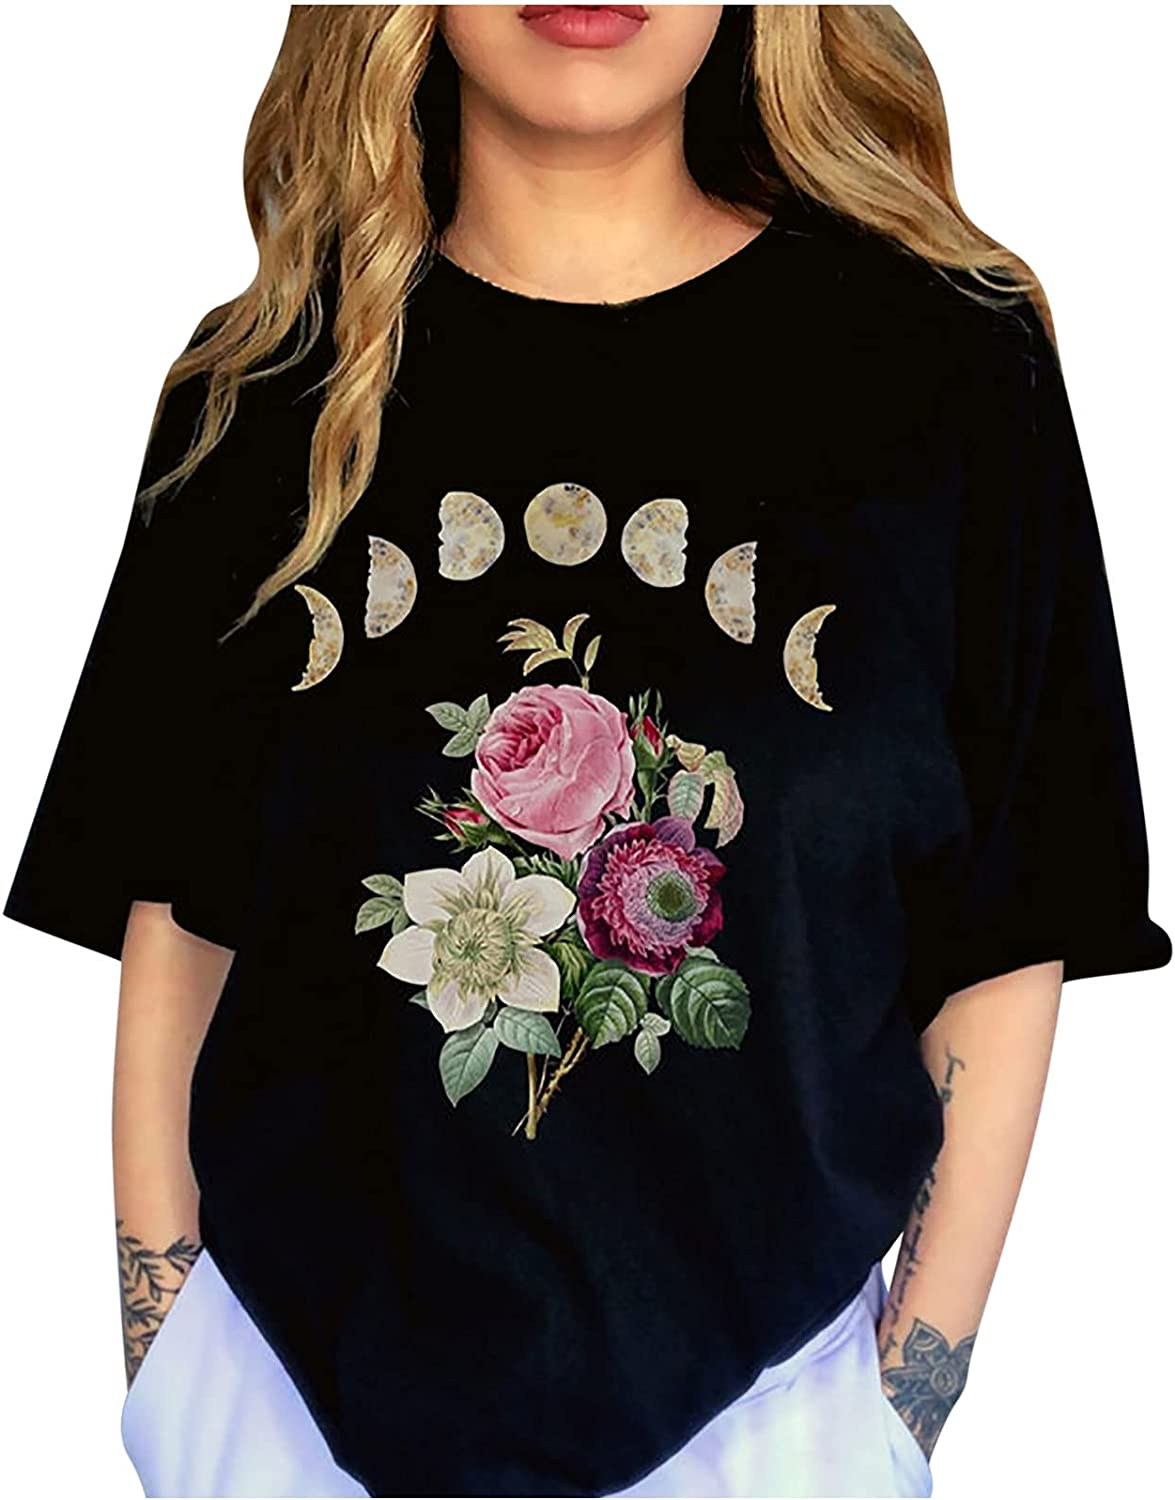 Women's Short Direct store Sleeve Oversized T Graphic Comfy Shirts Te Cheap mail order specialty store Vintage